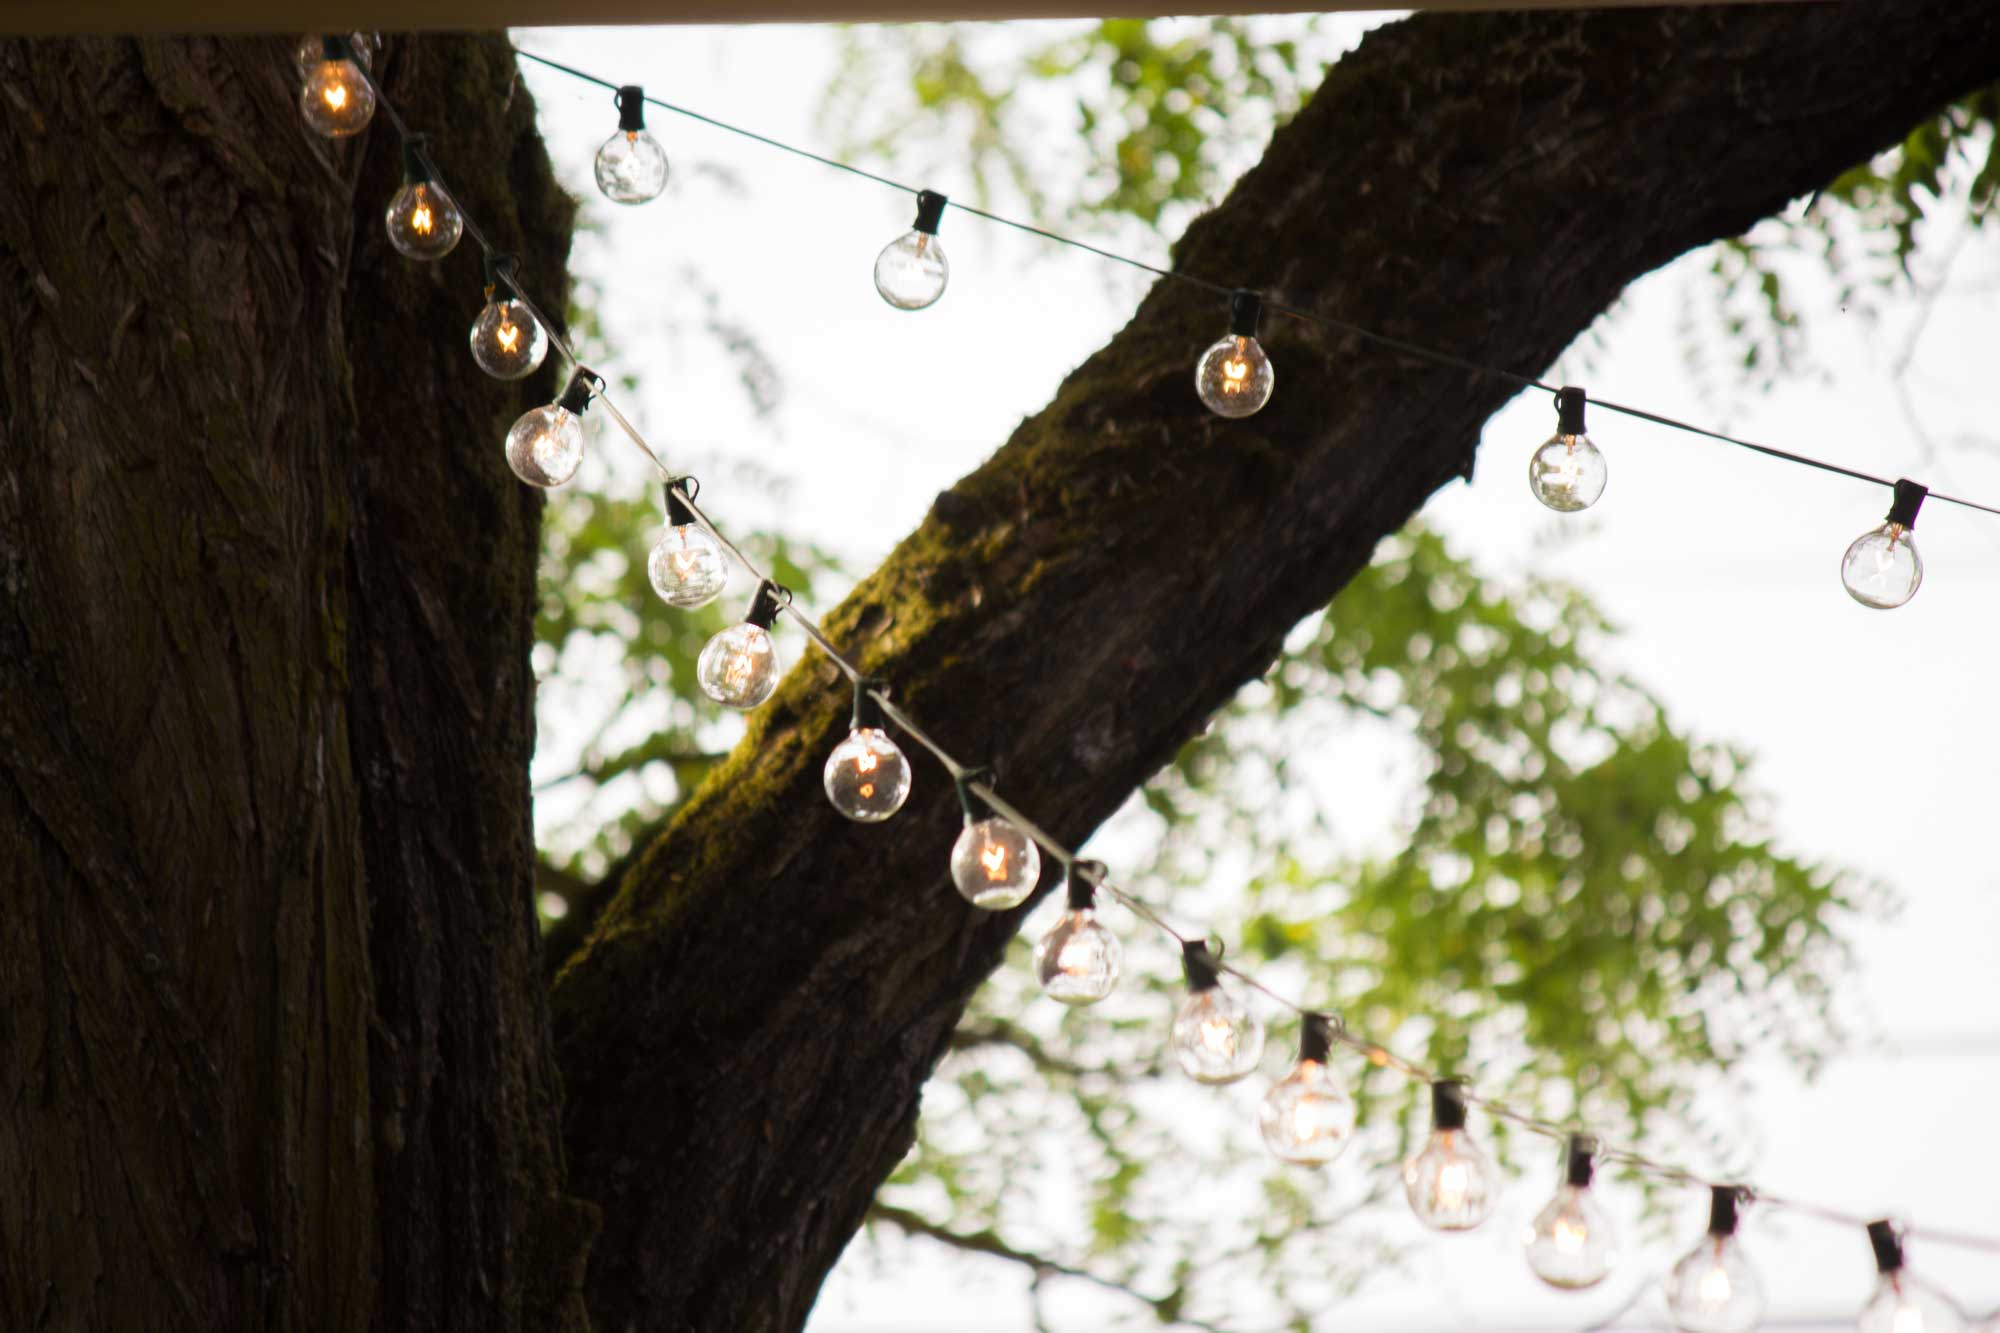 Picture of bulb lights hanging on tree branches outdoors during summer